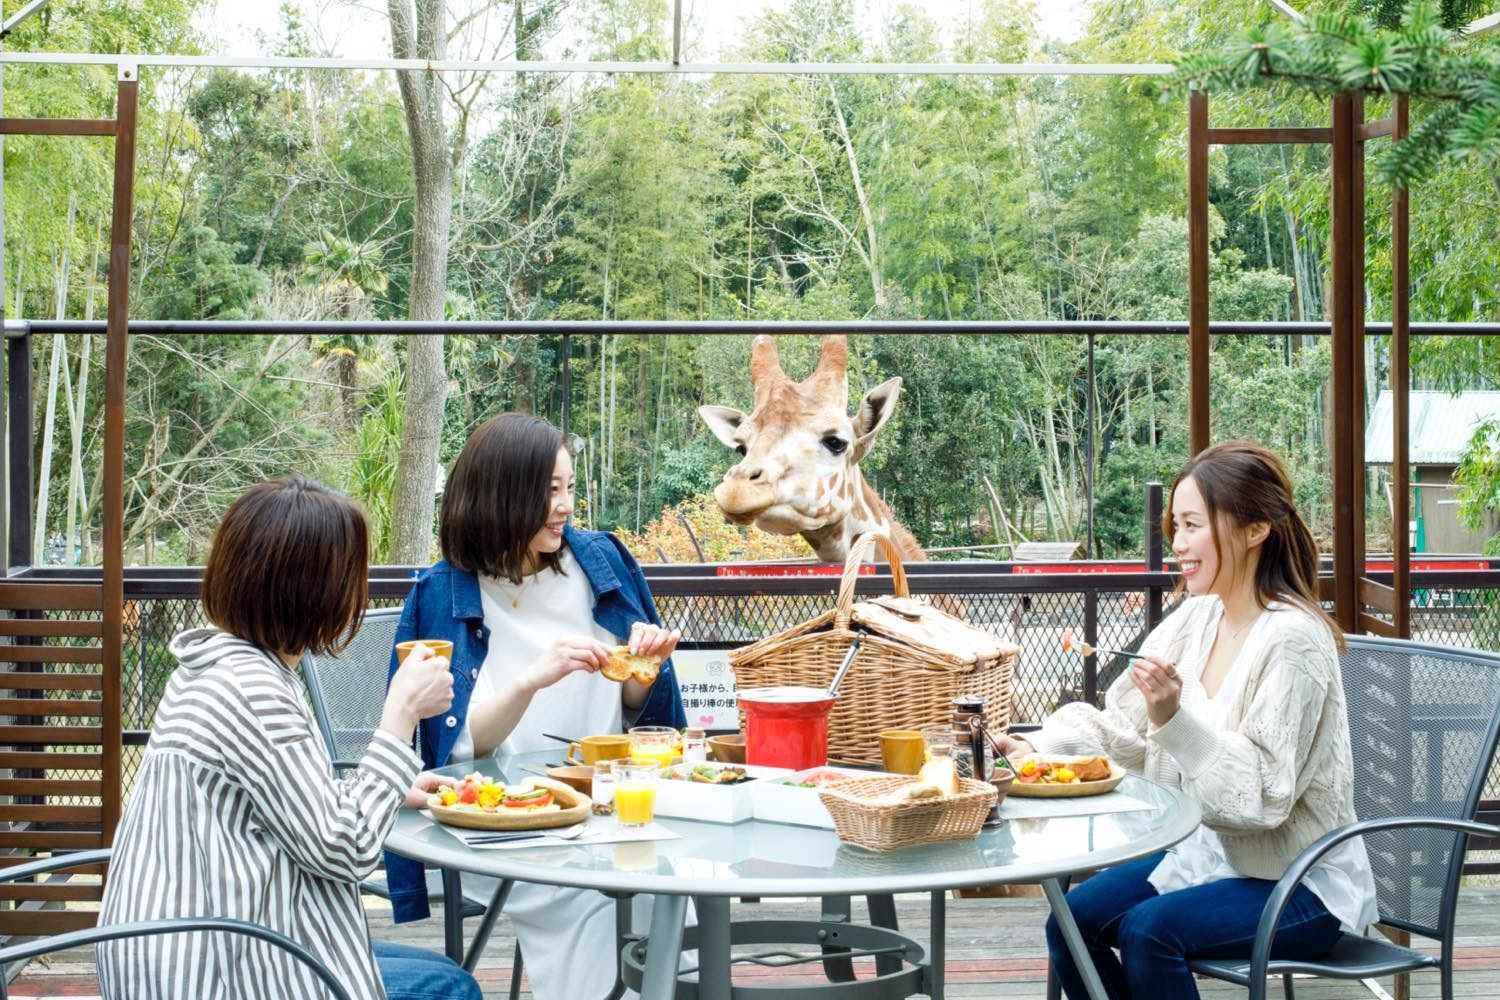 This new bamboo forest glamping site in Chiba has resident giraffes